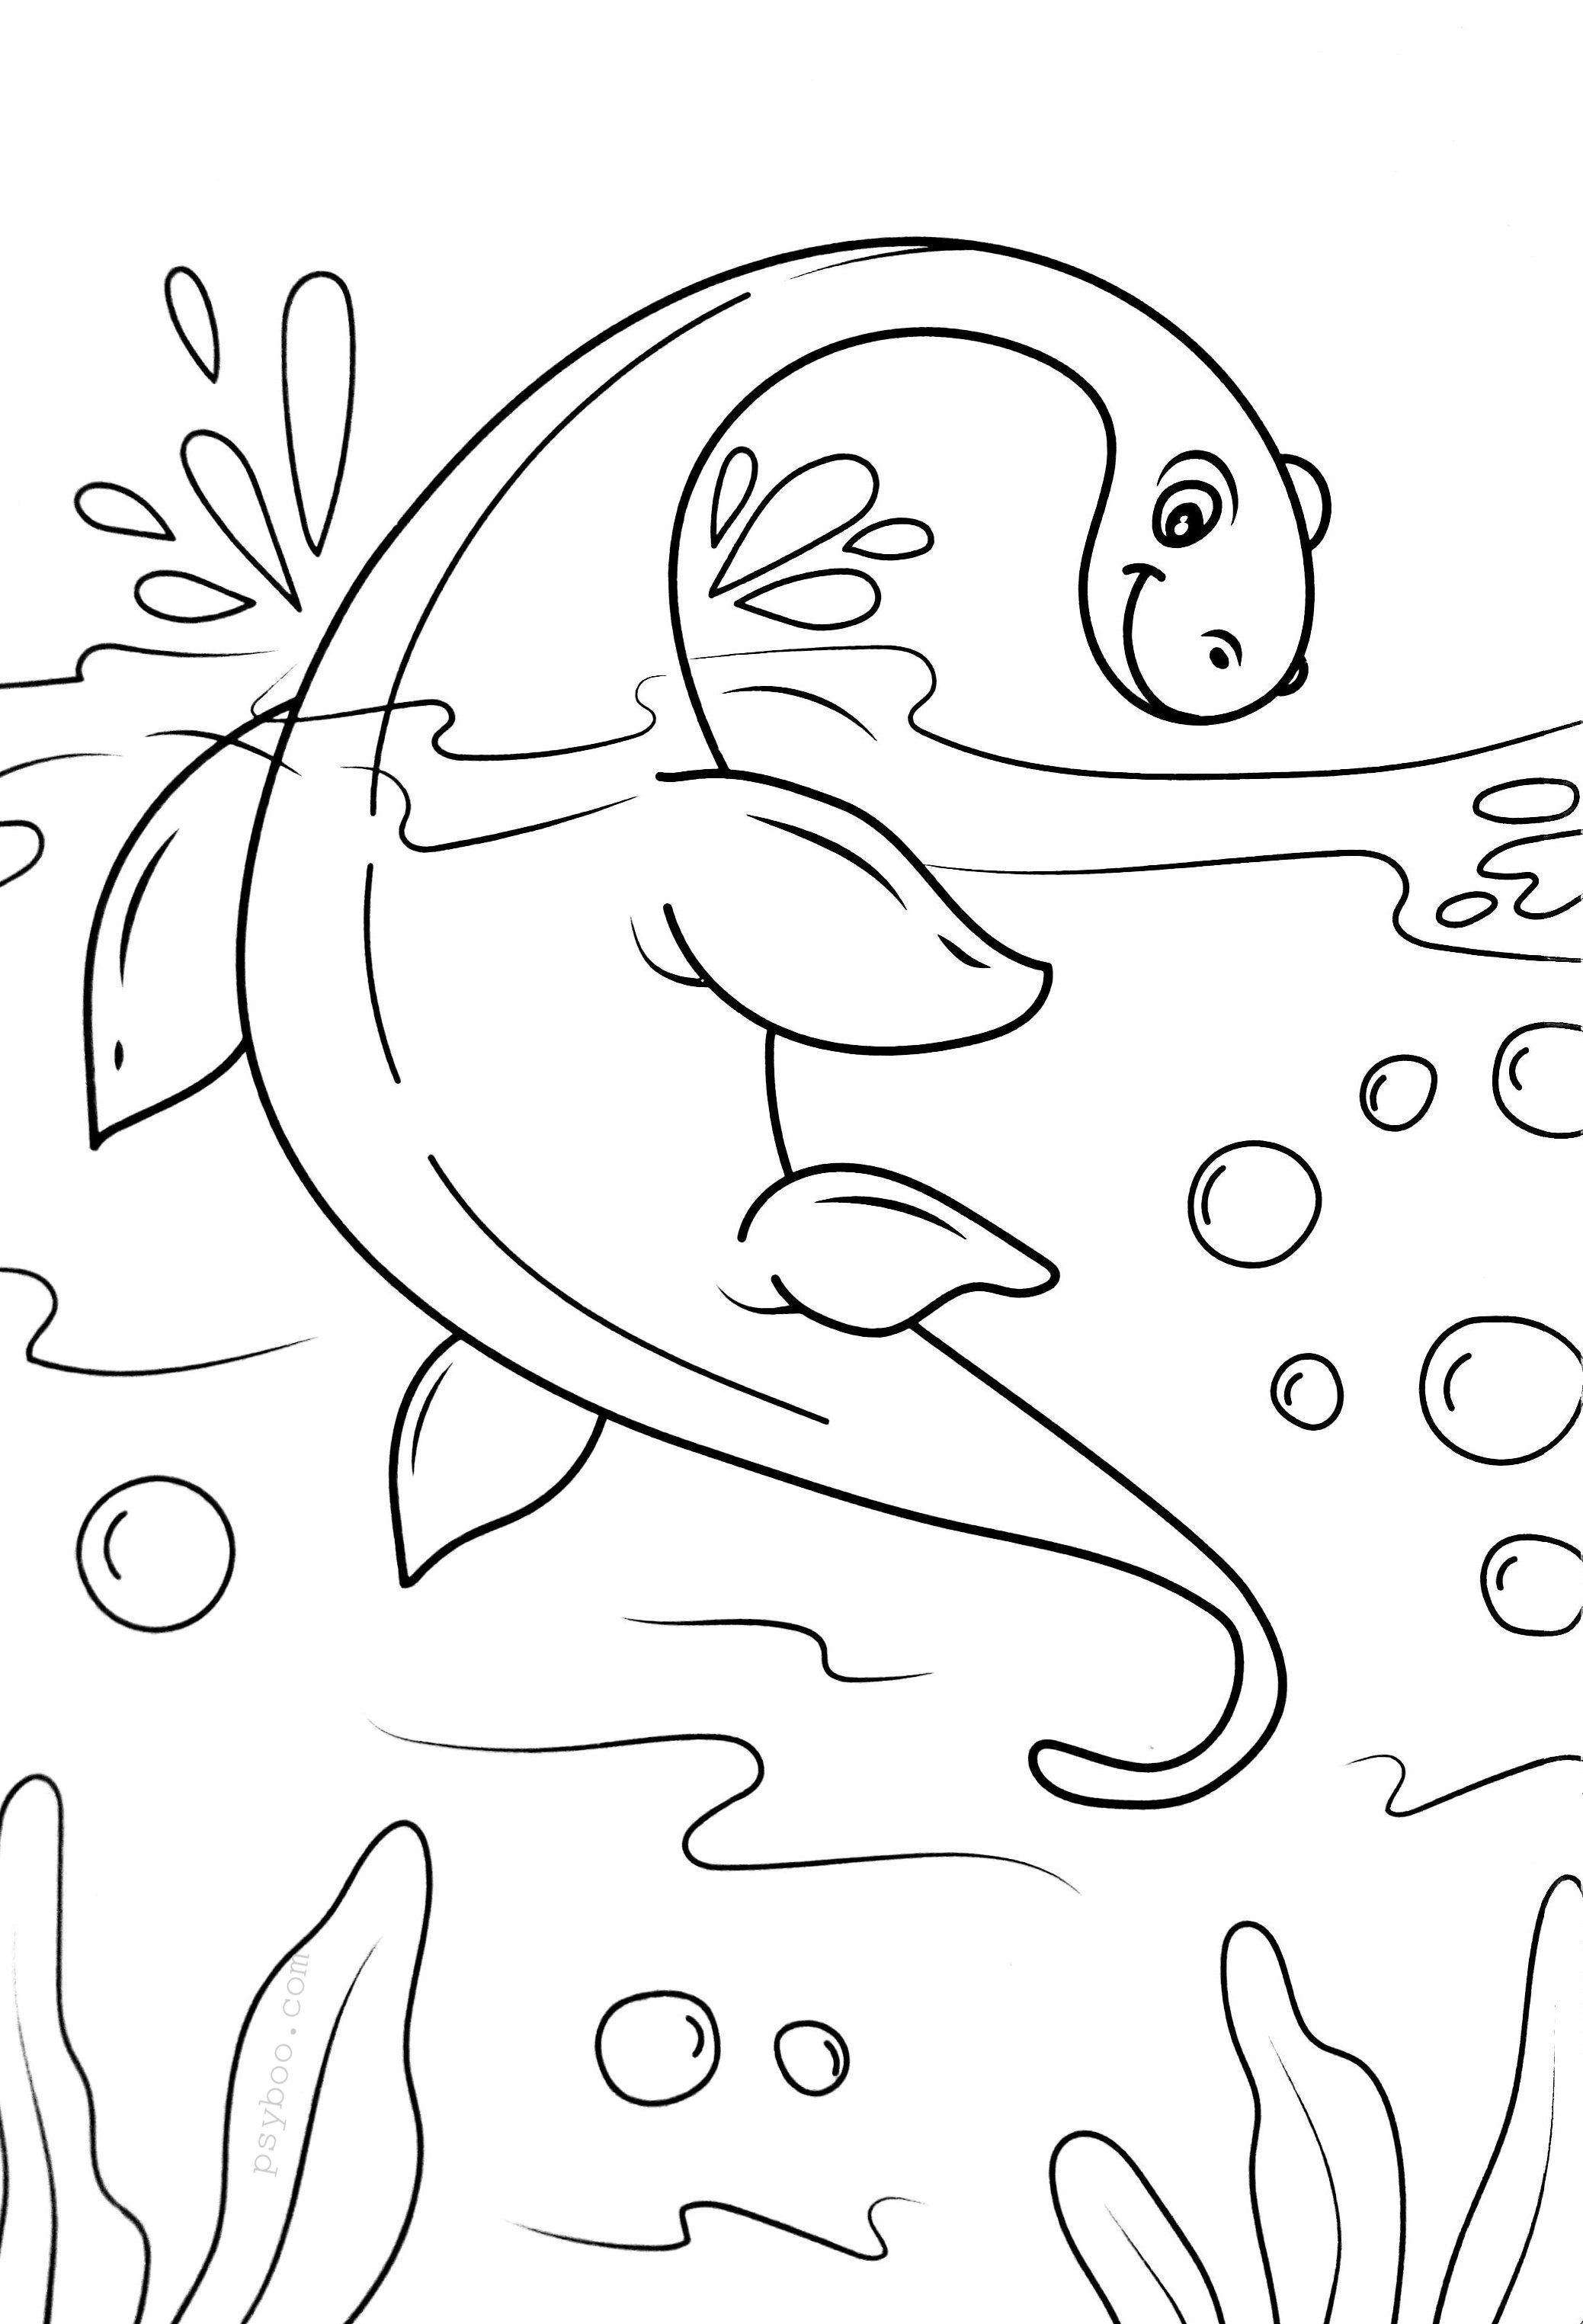 Nessie Loch Ness Lake Monster Coloring Page For Free Download Monster Coloring Pages Coloring Pages Dinosaur Coloring Pages